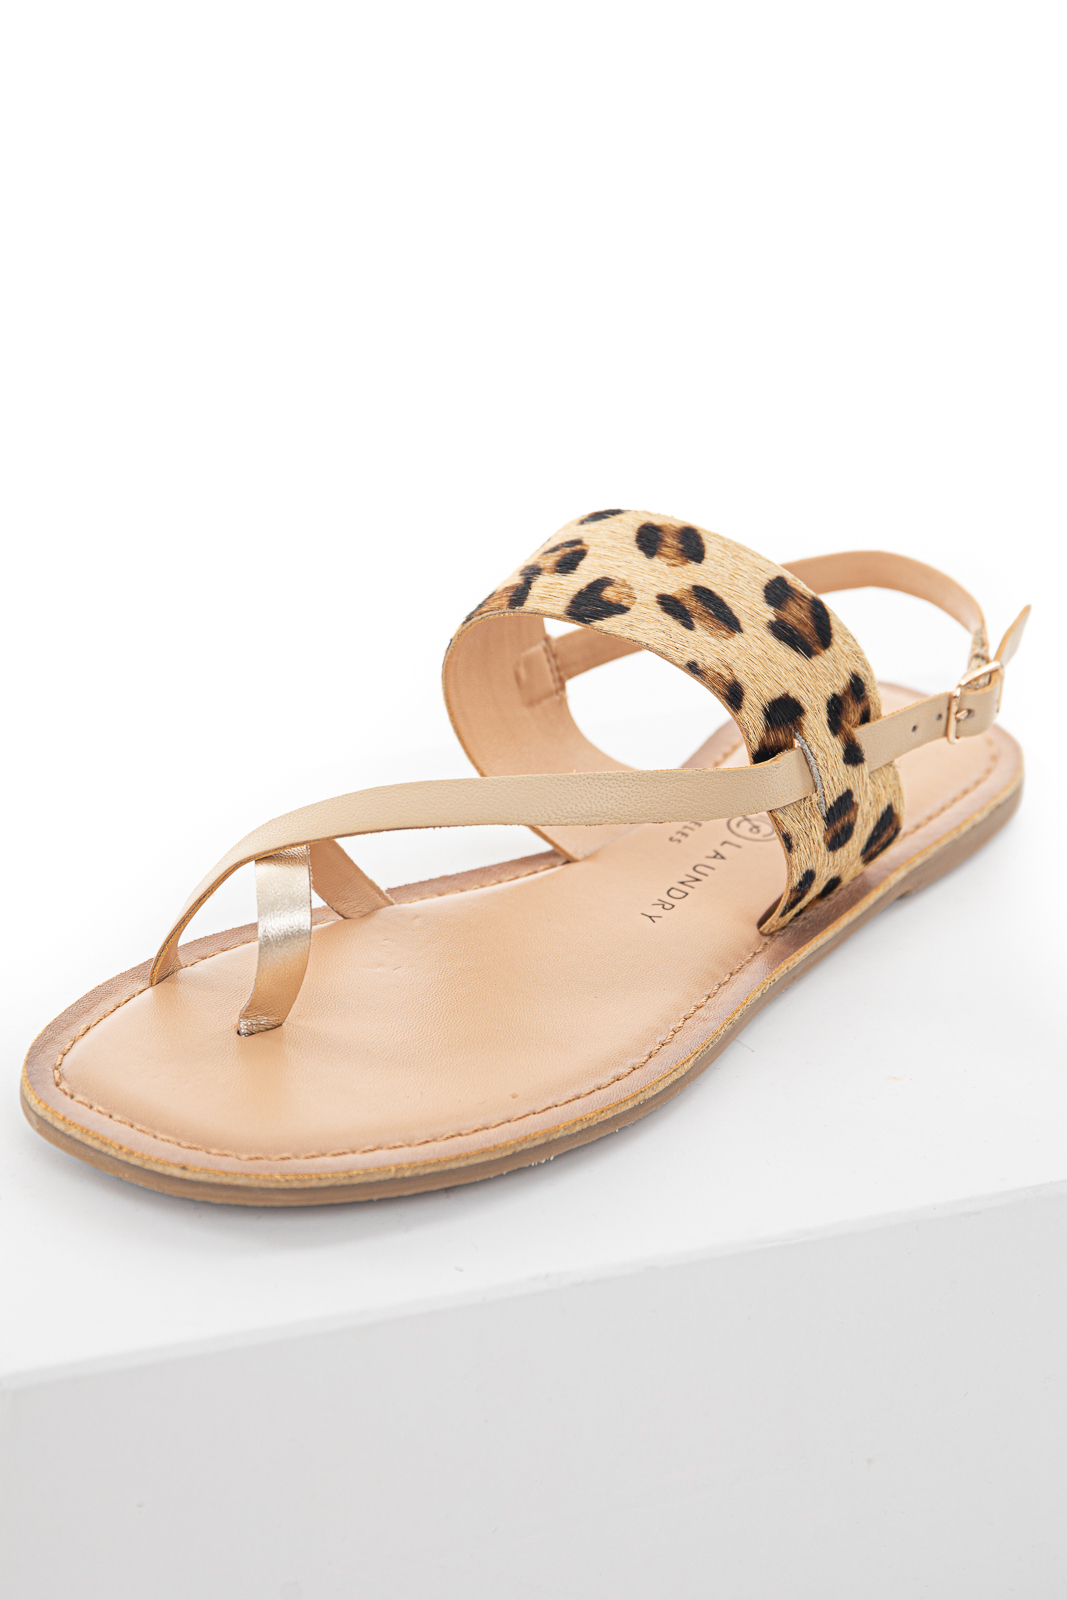 Beige Faux Leather Strappy Sandal with Leopard Print Detail